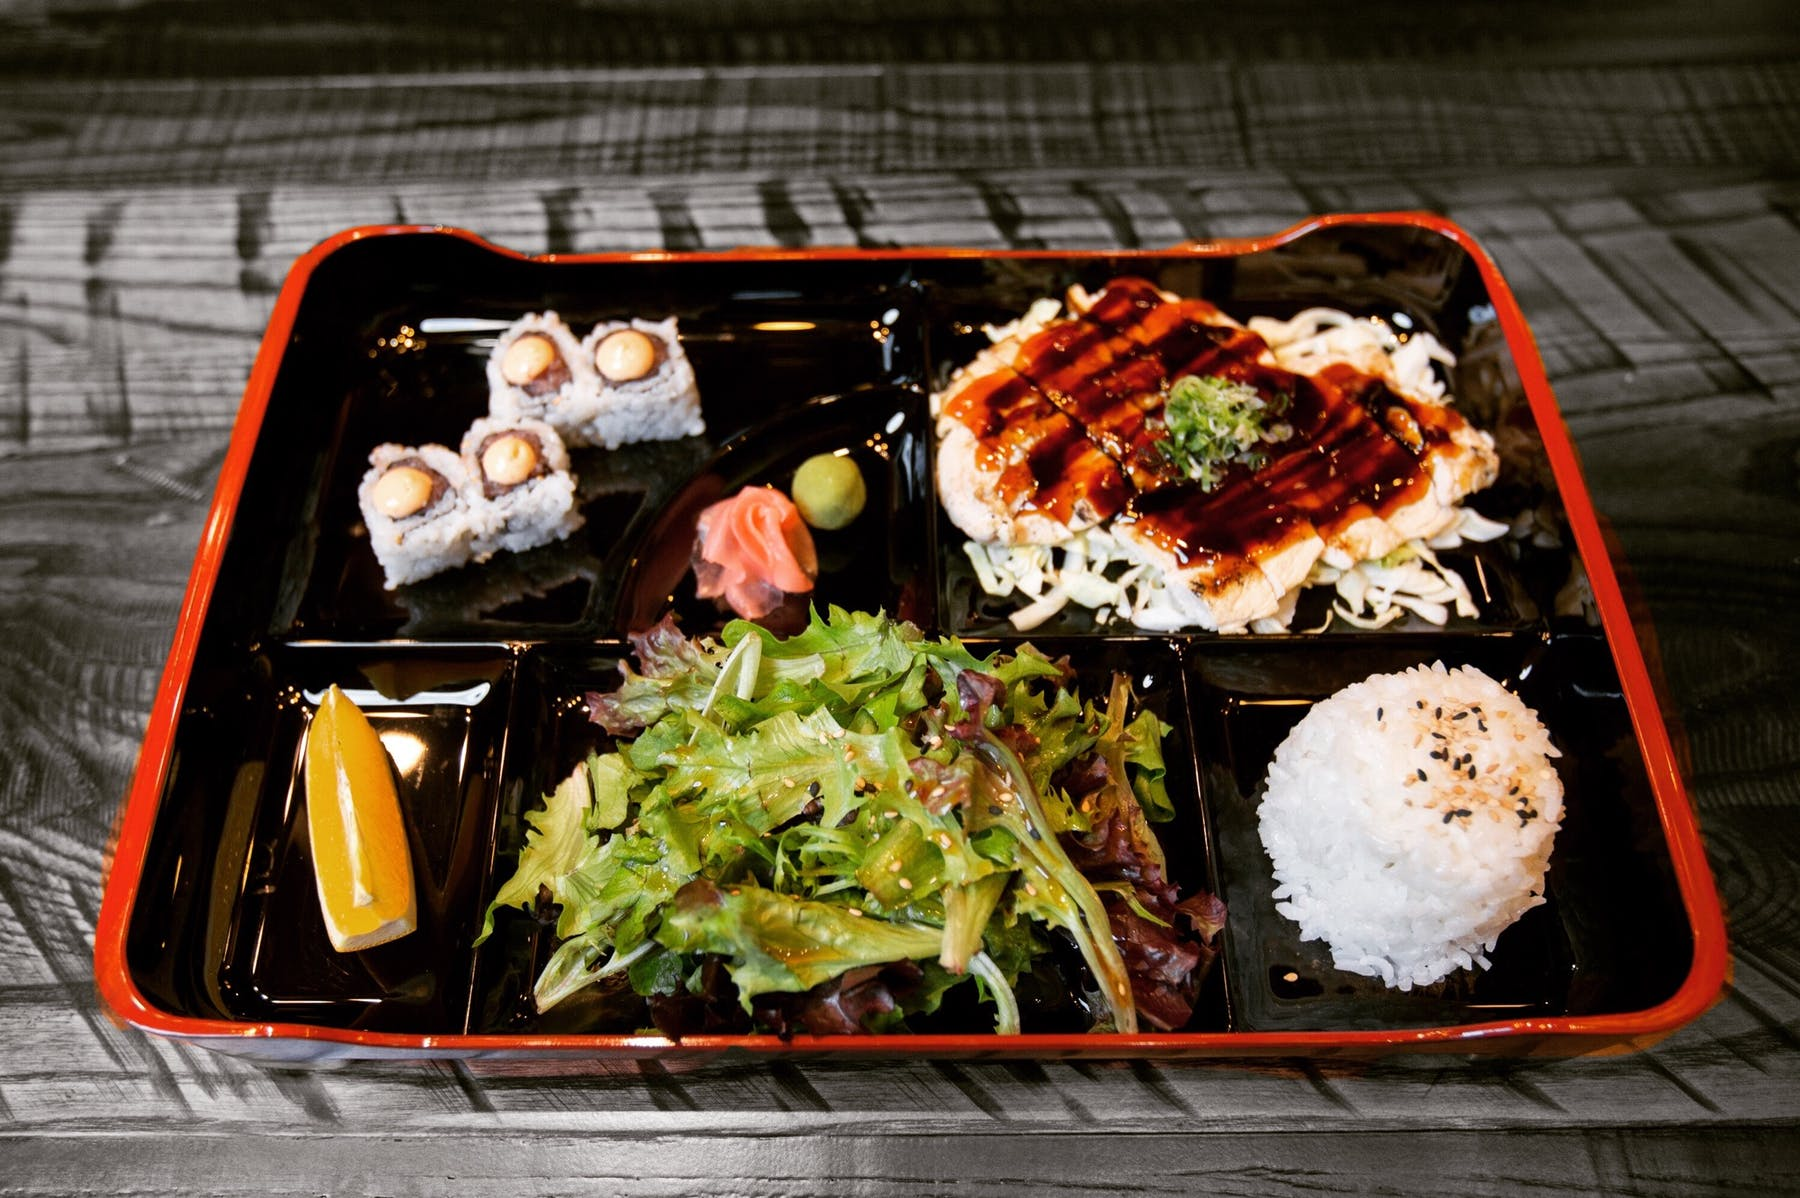 bentobox with different Japanese food, sushi rolls, white rice, coleslaw